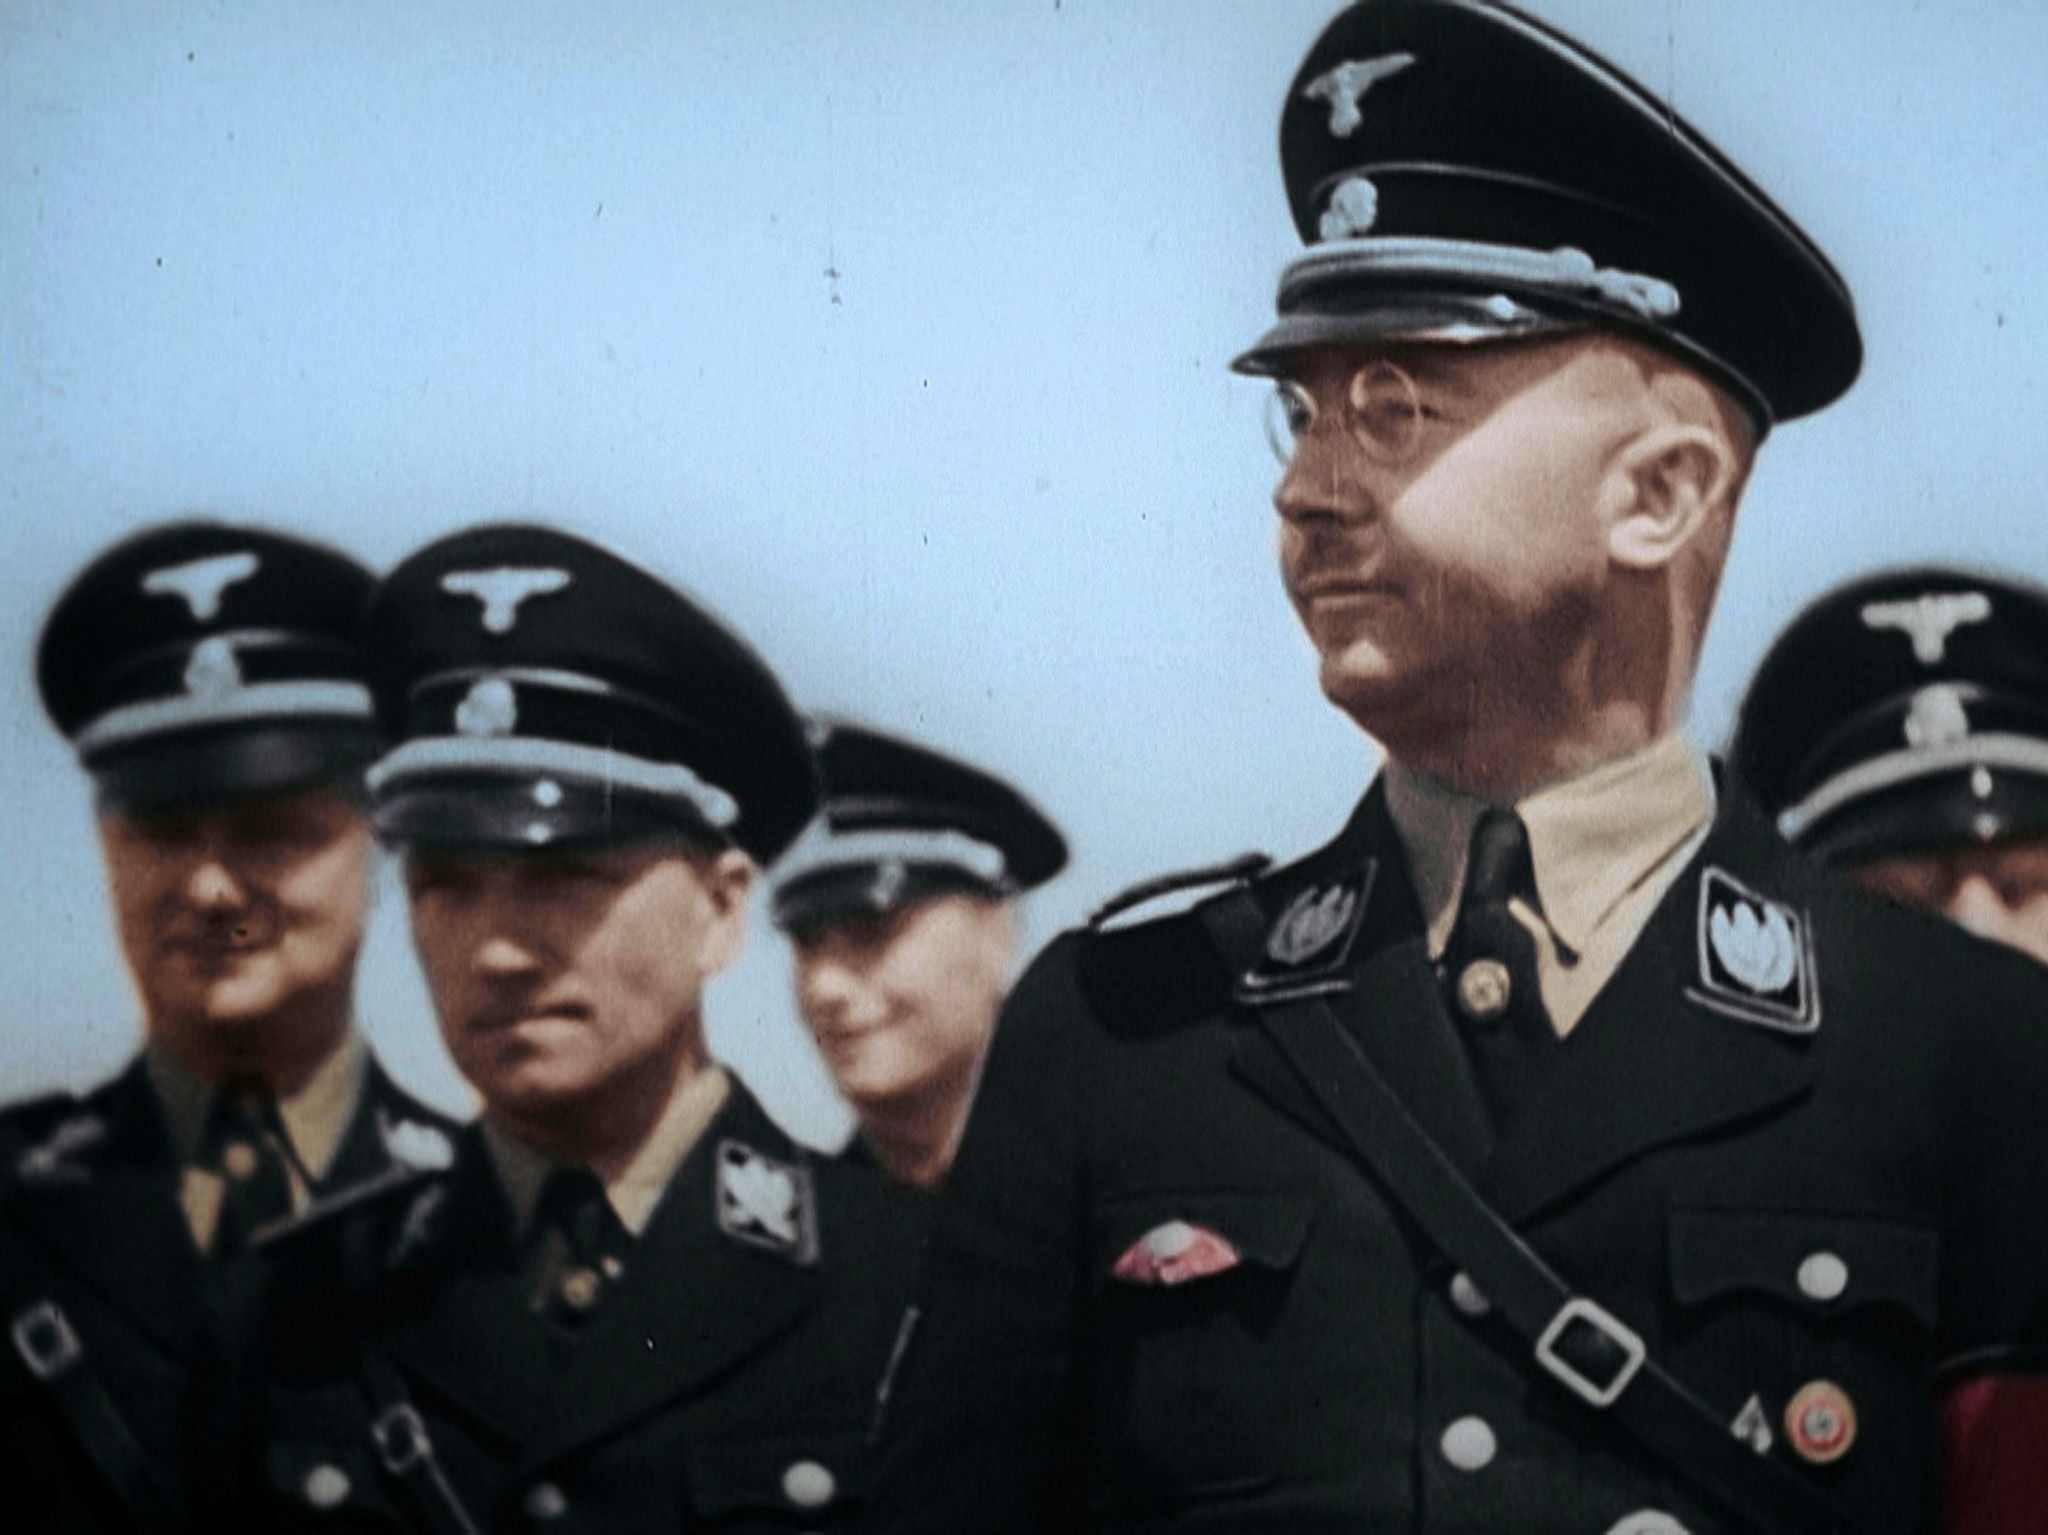 Heinrich Himmler and SS officers. This image is from Inside the SS. [Photo of the day - May 2018]